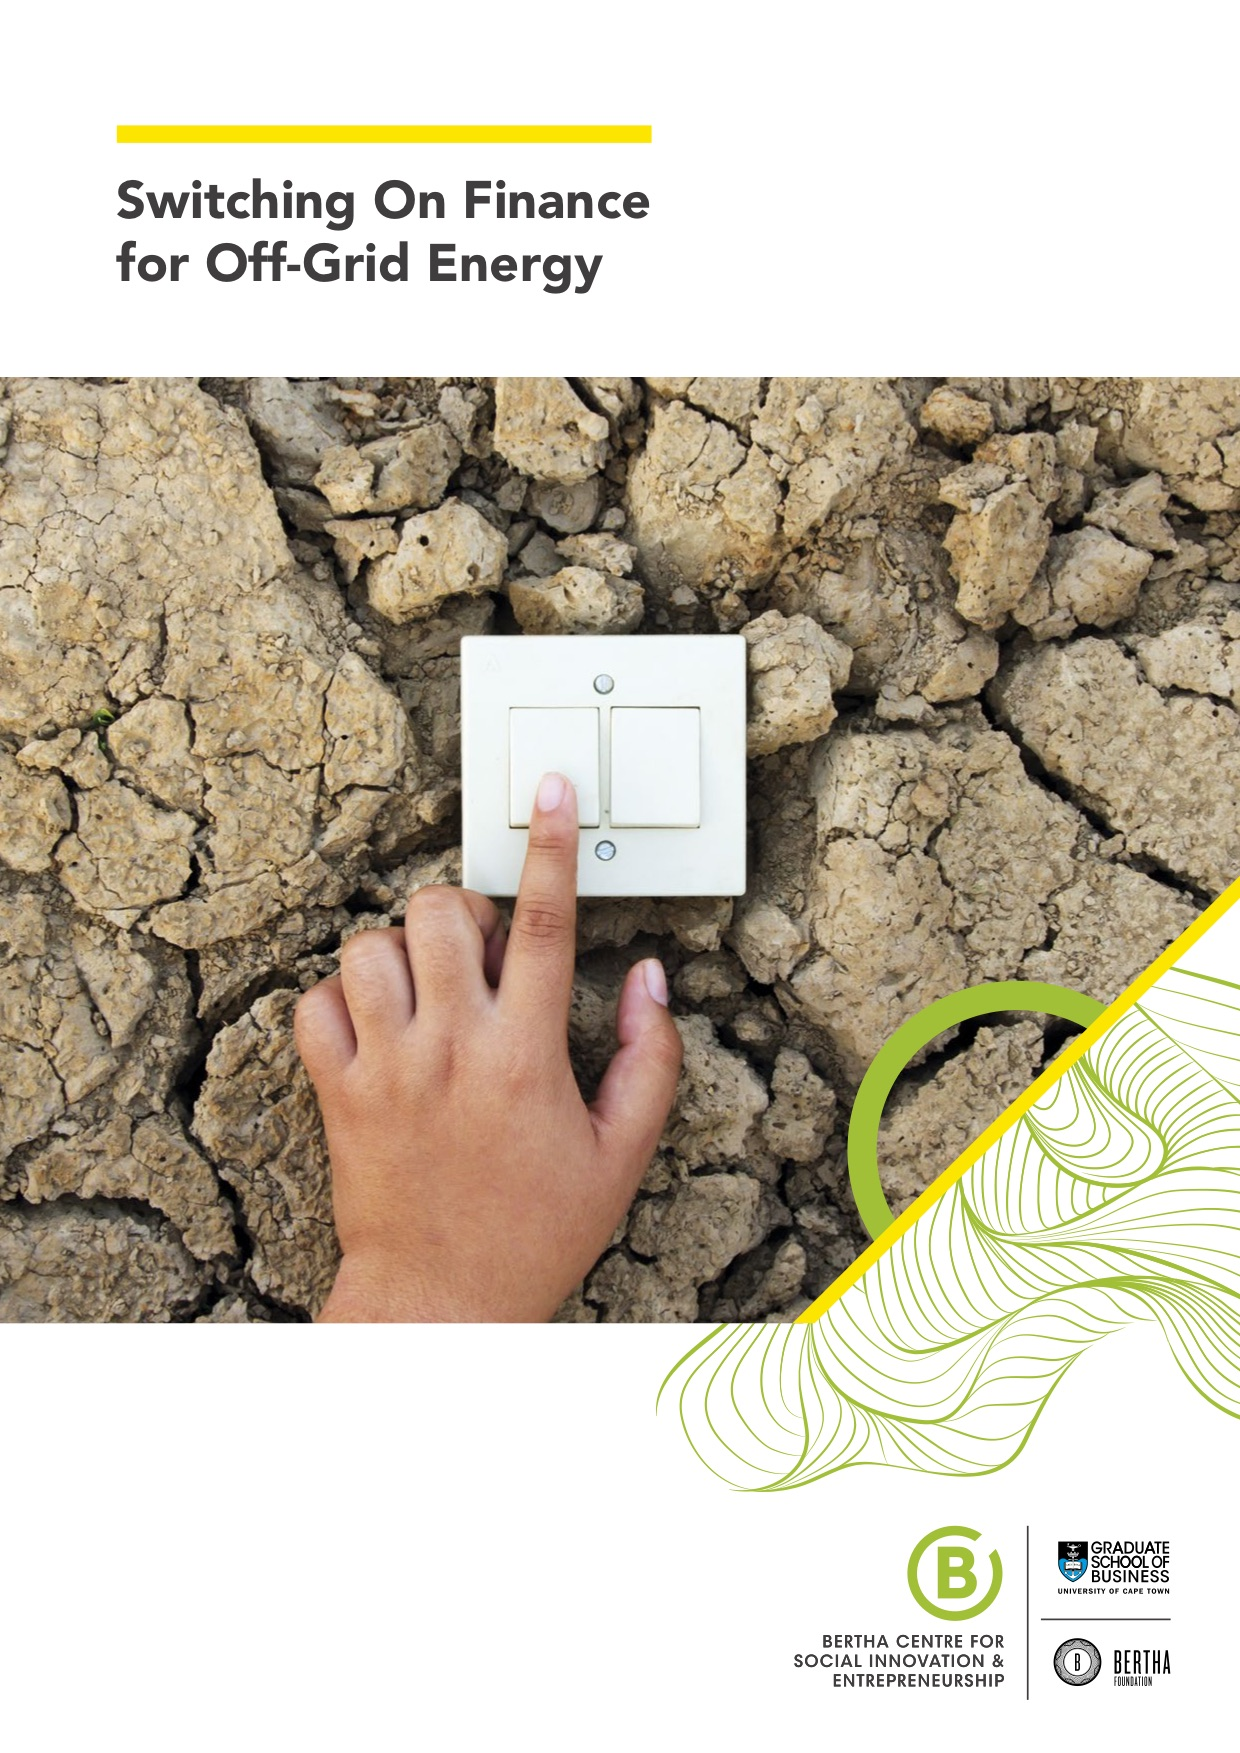 Switching On Finance for Off-Grid Energy